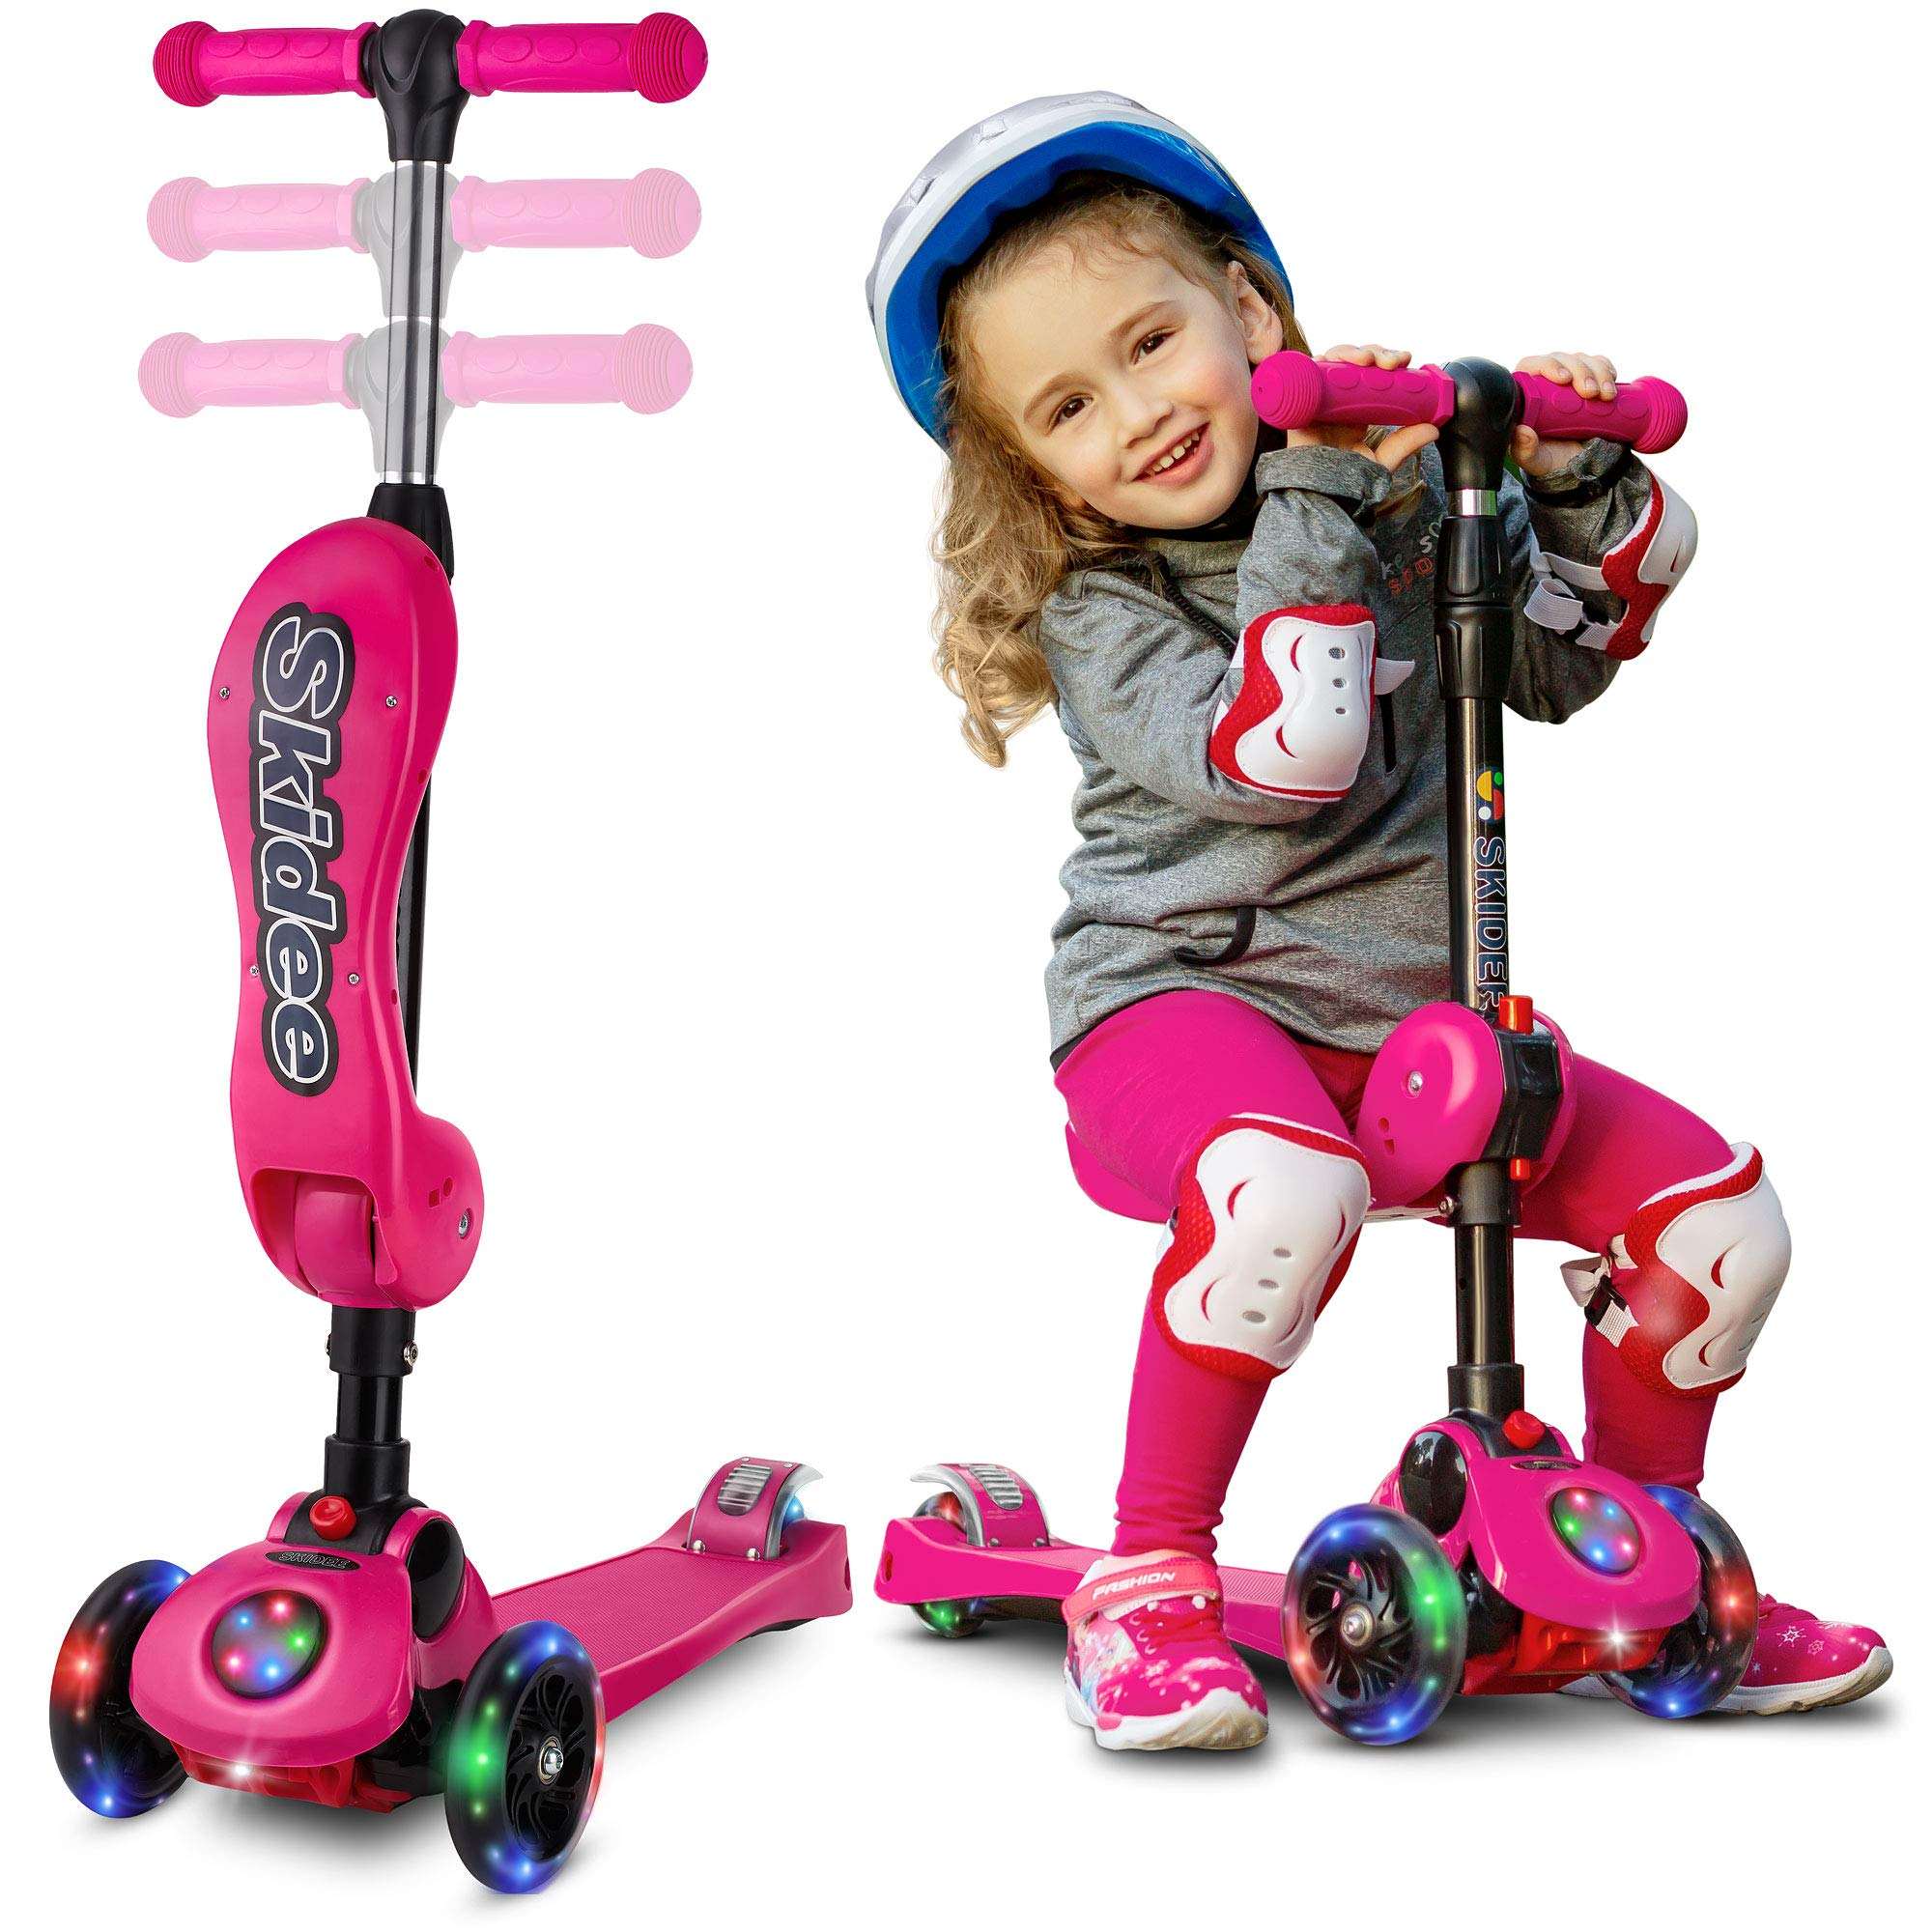 S SKIDEE 3 Wheel Kick Scooter With Folding Seat (Pink) by S SKIDEE